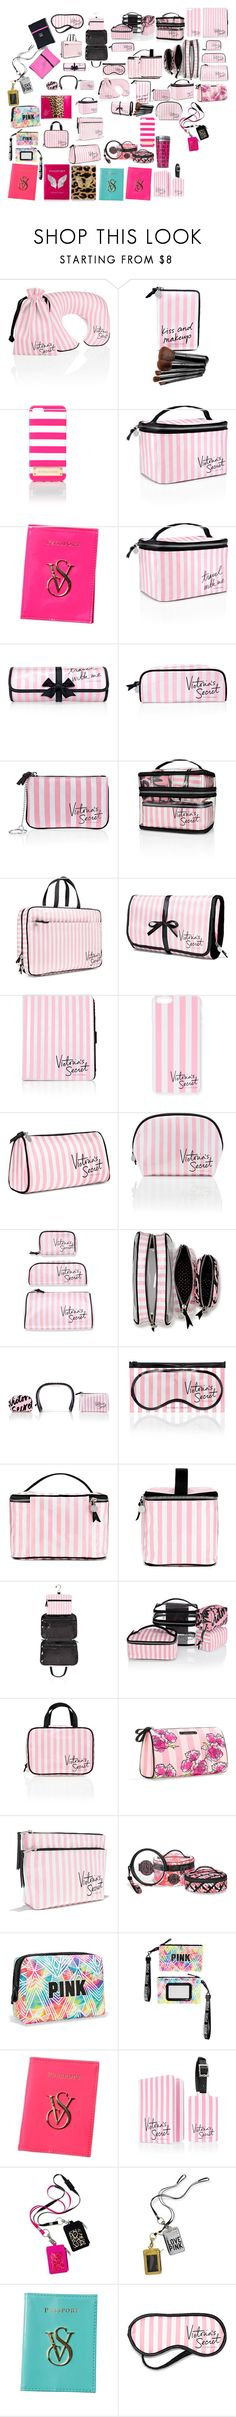 """""""VS PINK"""" by angelbrubisc ❤ liked on Polyvore featuring beauty, Victoria's Secret, Beauty Rush and Passport"""